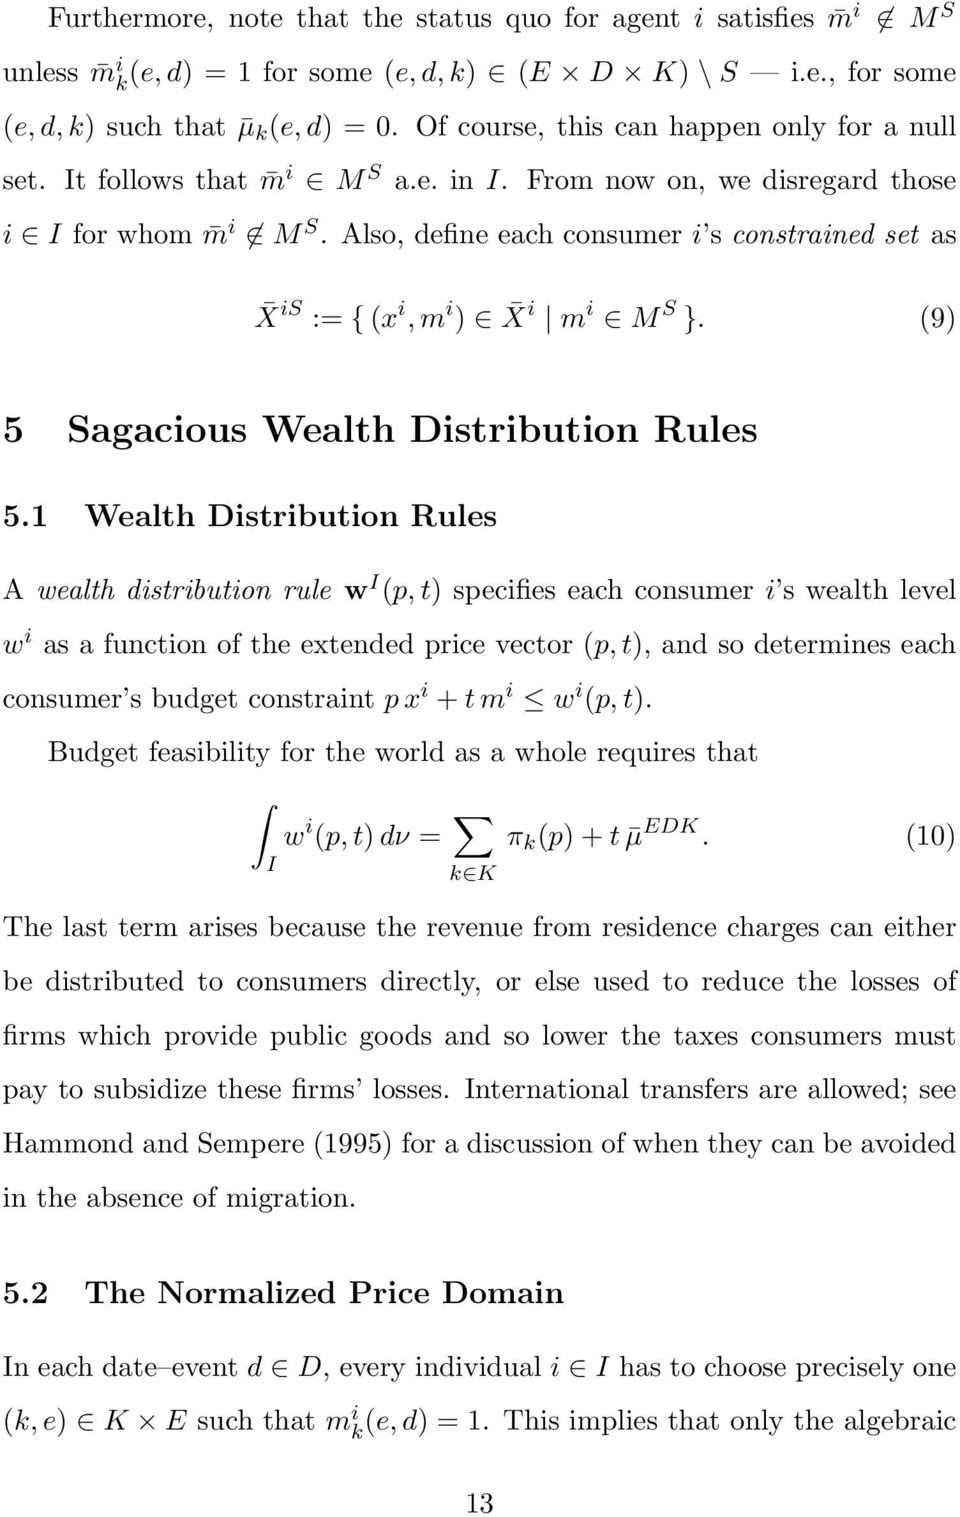 Also, define each consumer i s constrained set as X is := { (x i, m i ) X i m i M S }. (9) 5 Sagacious Wealth Distribution Rules 5.